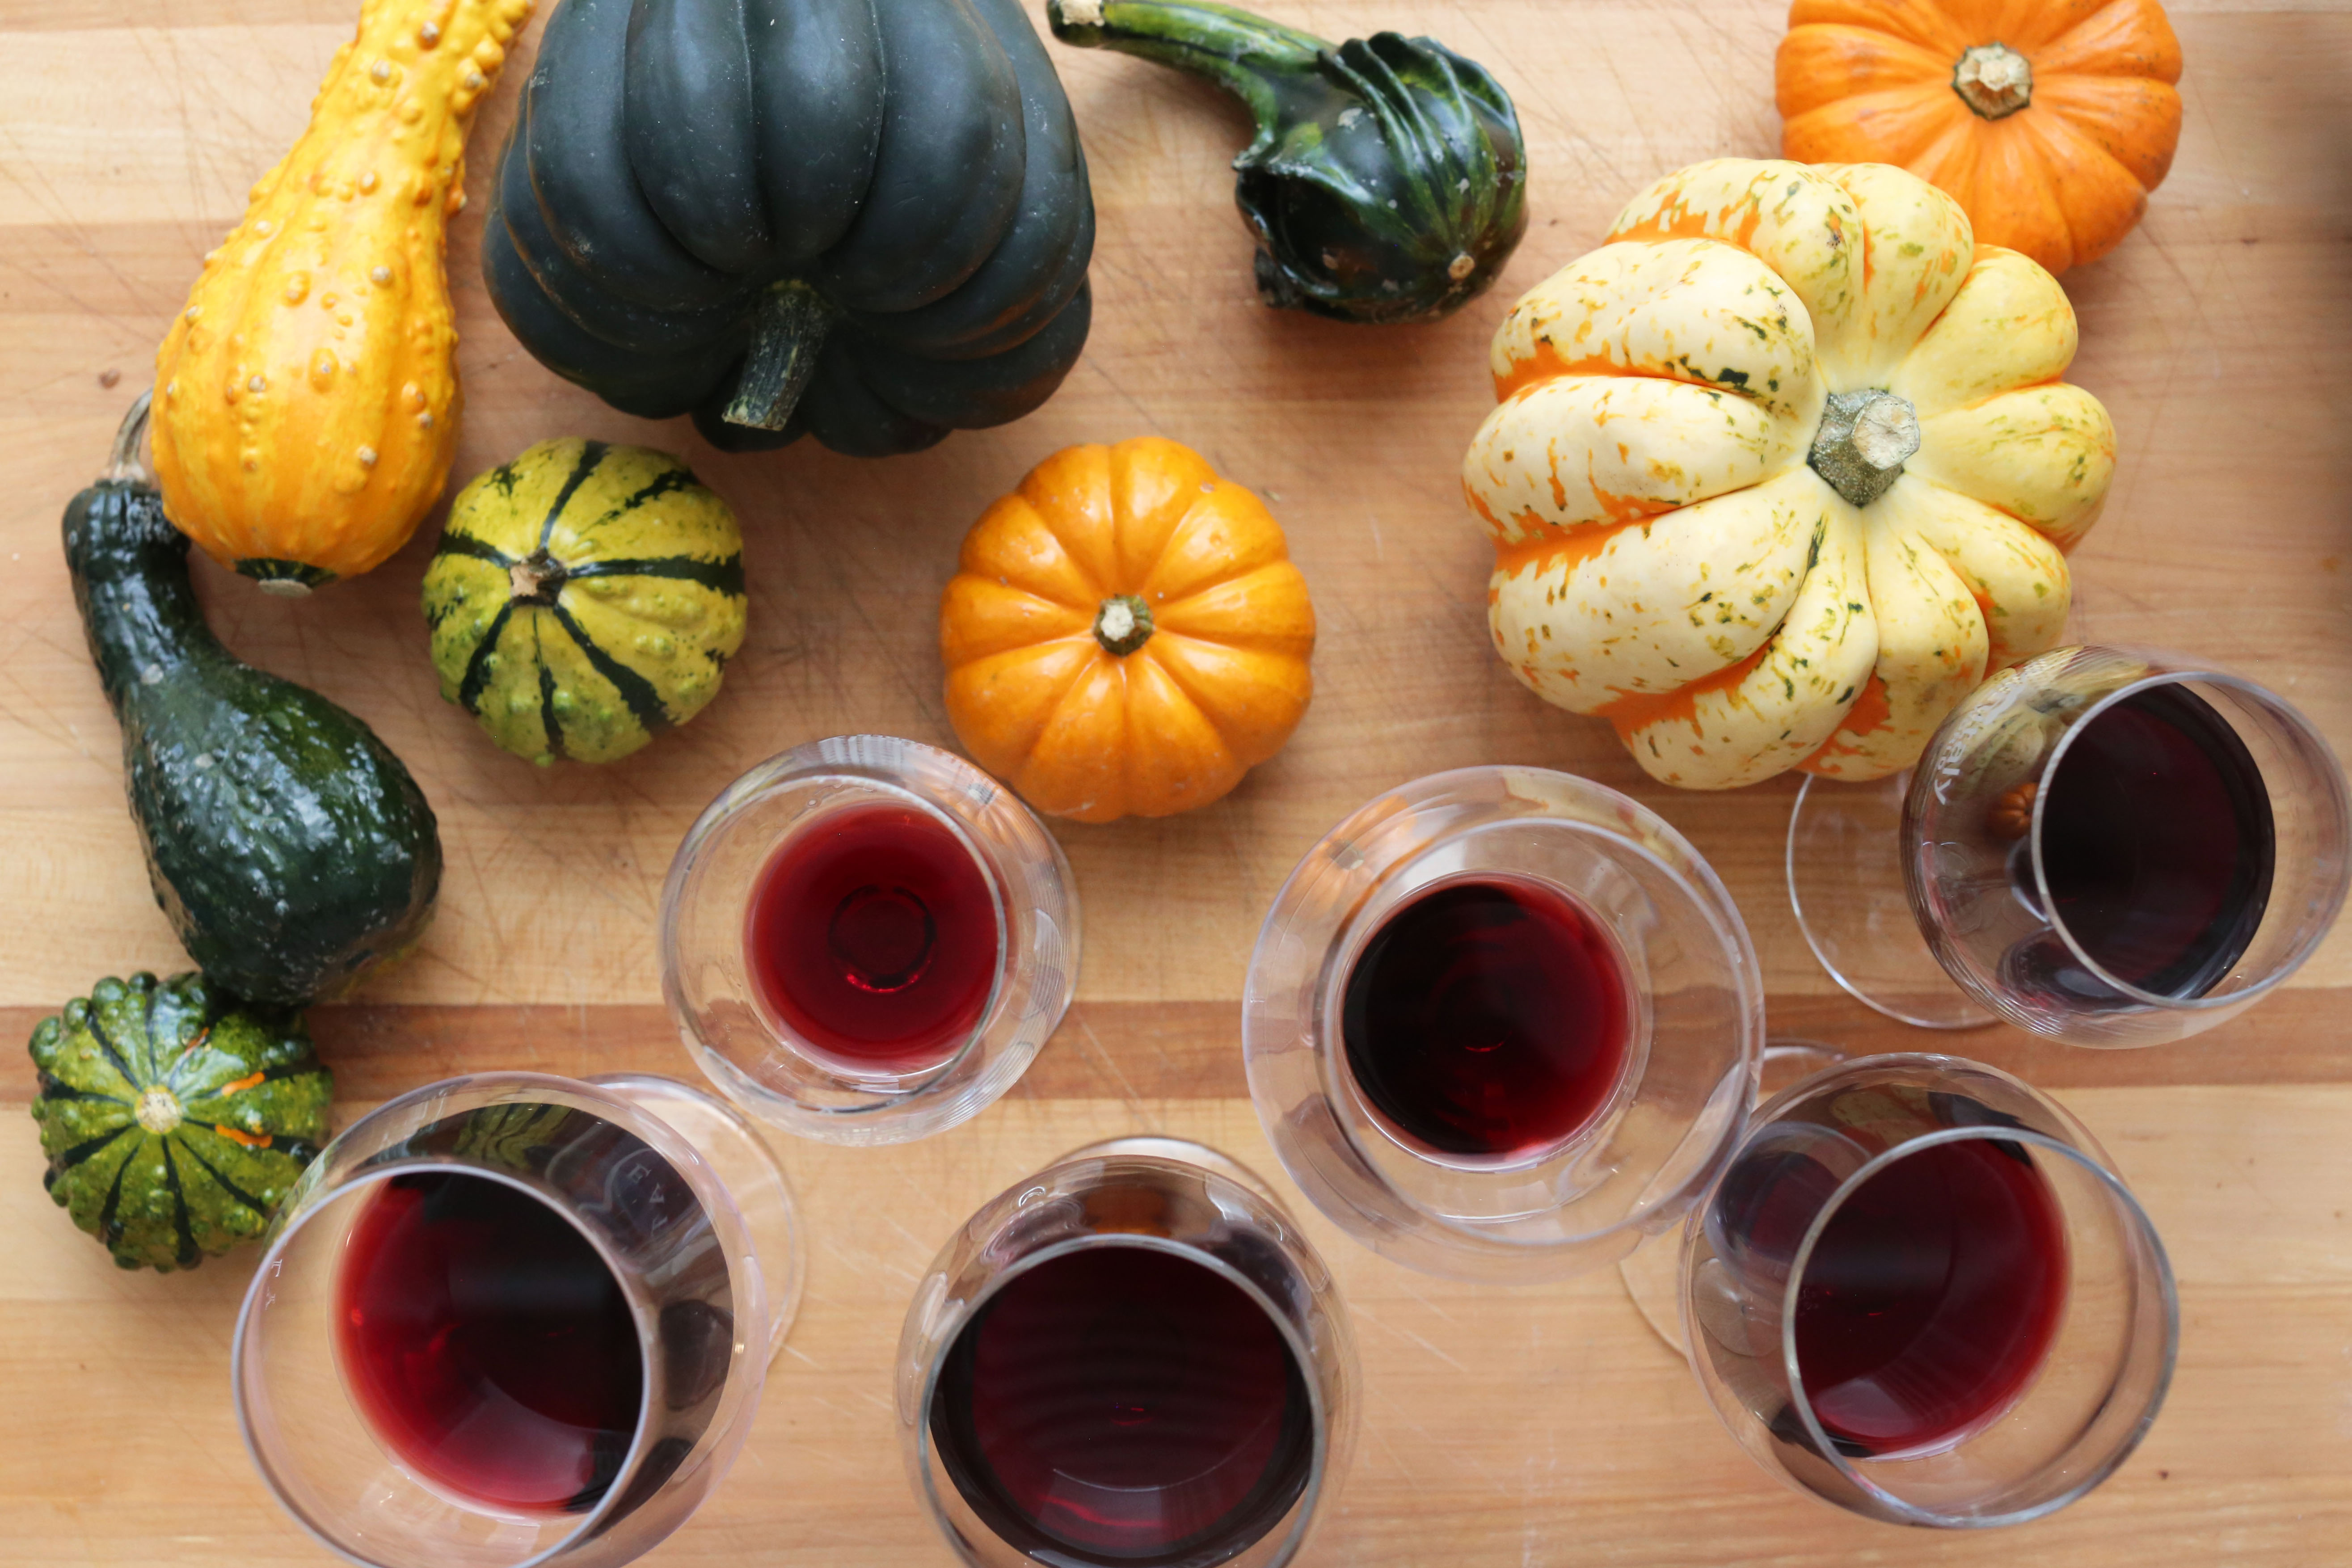 eataly-bottoms-up-gourds-pumpkin-red-wine-wood-board-1